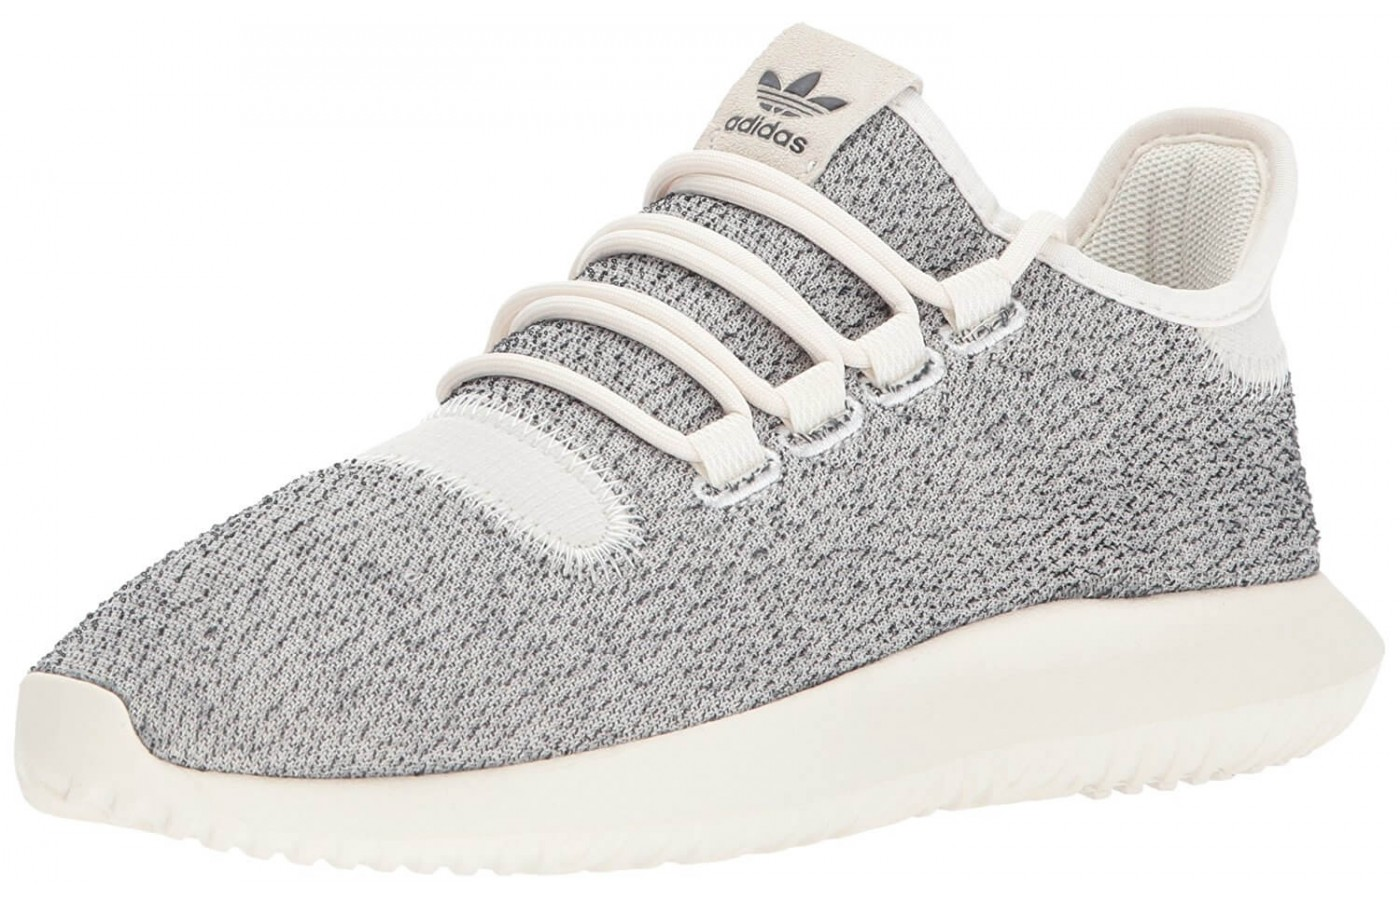 los angeles 136ac e981a The Adidas Tubular Shadow features EVA cushioning ...